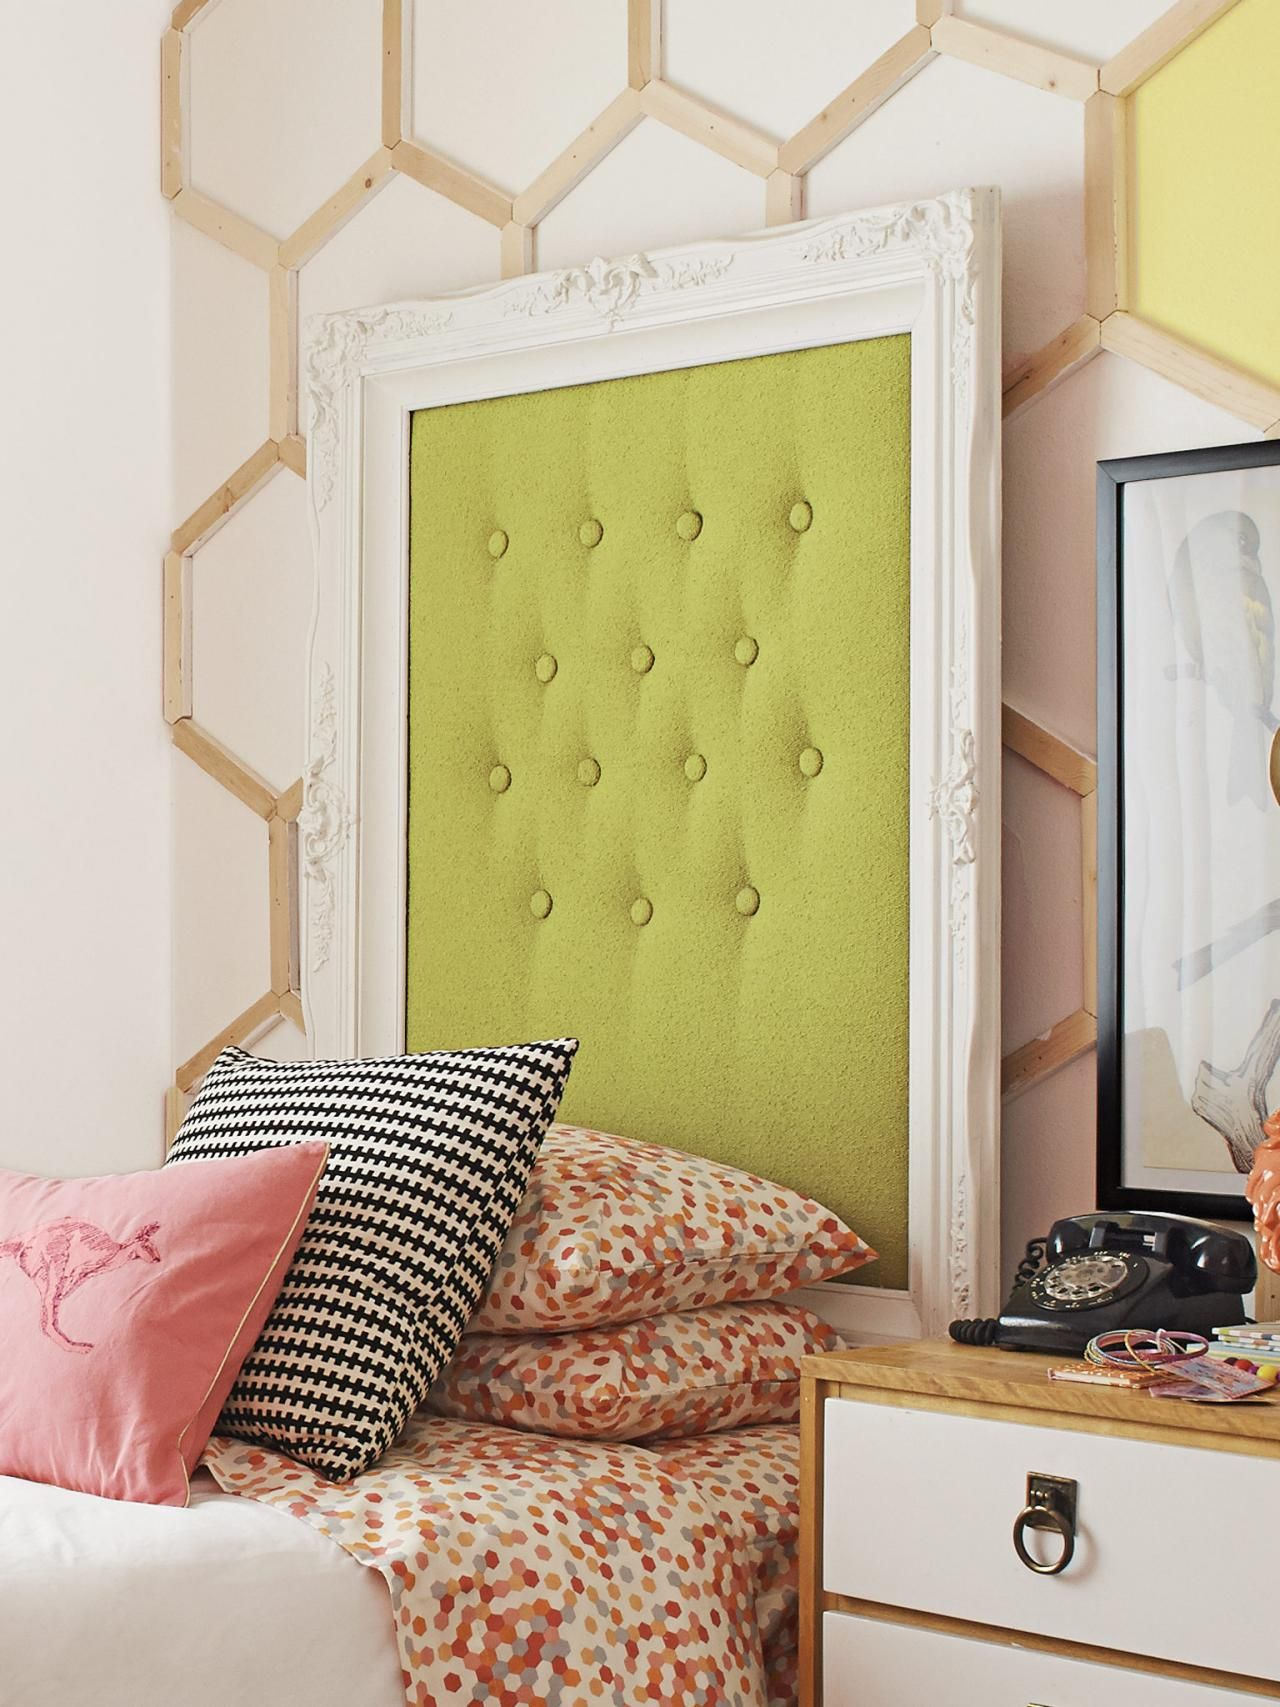 The Totally Diy Kids Room